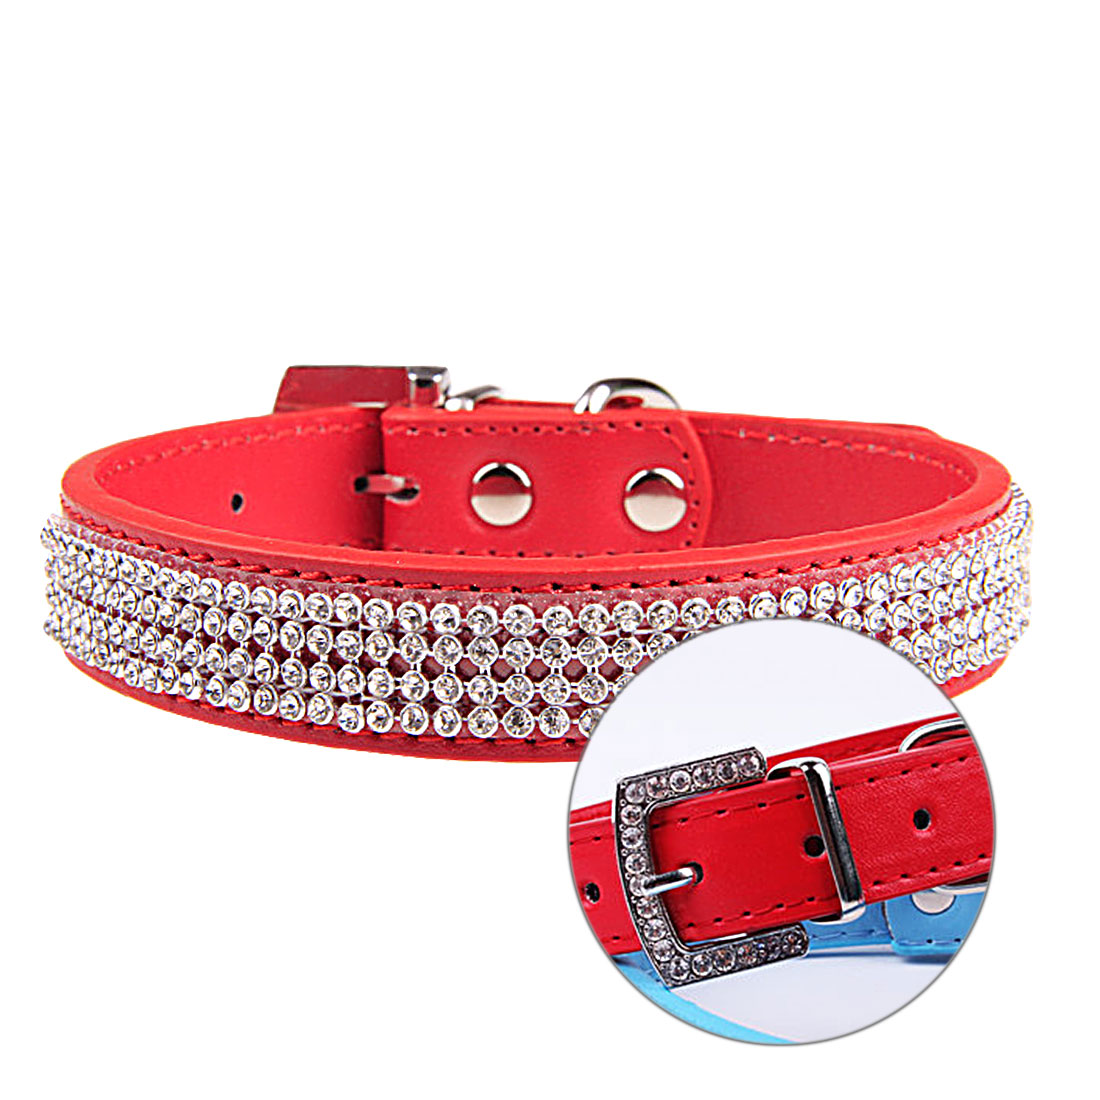 High Sale Bling Diamante Rhinestone PU Leather Cat Dog Collars Pink for Small Medium Dogs Various sizes of colors